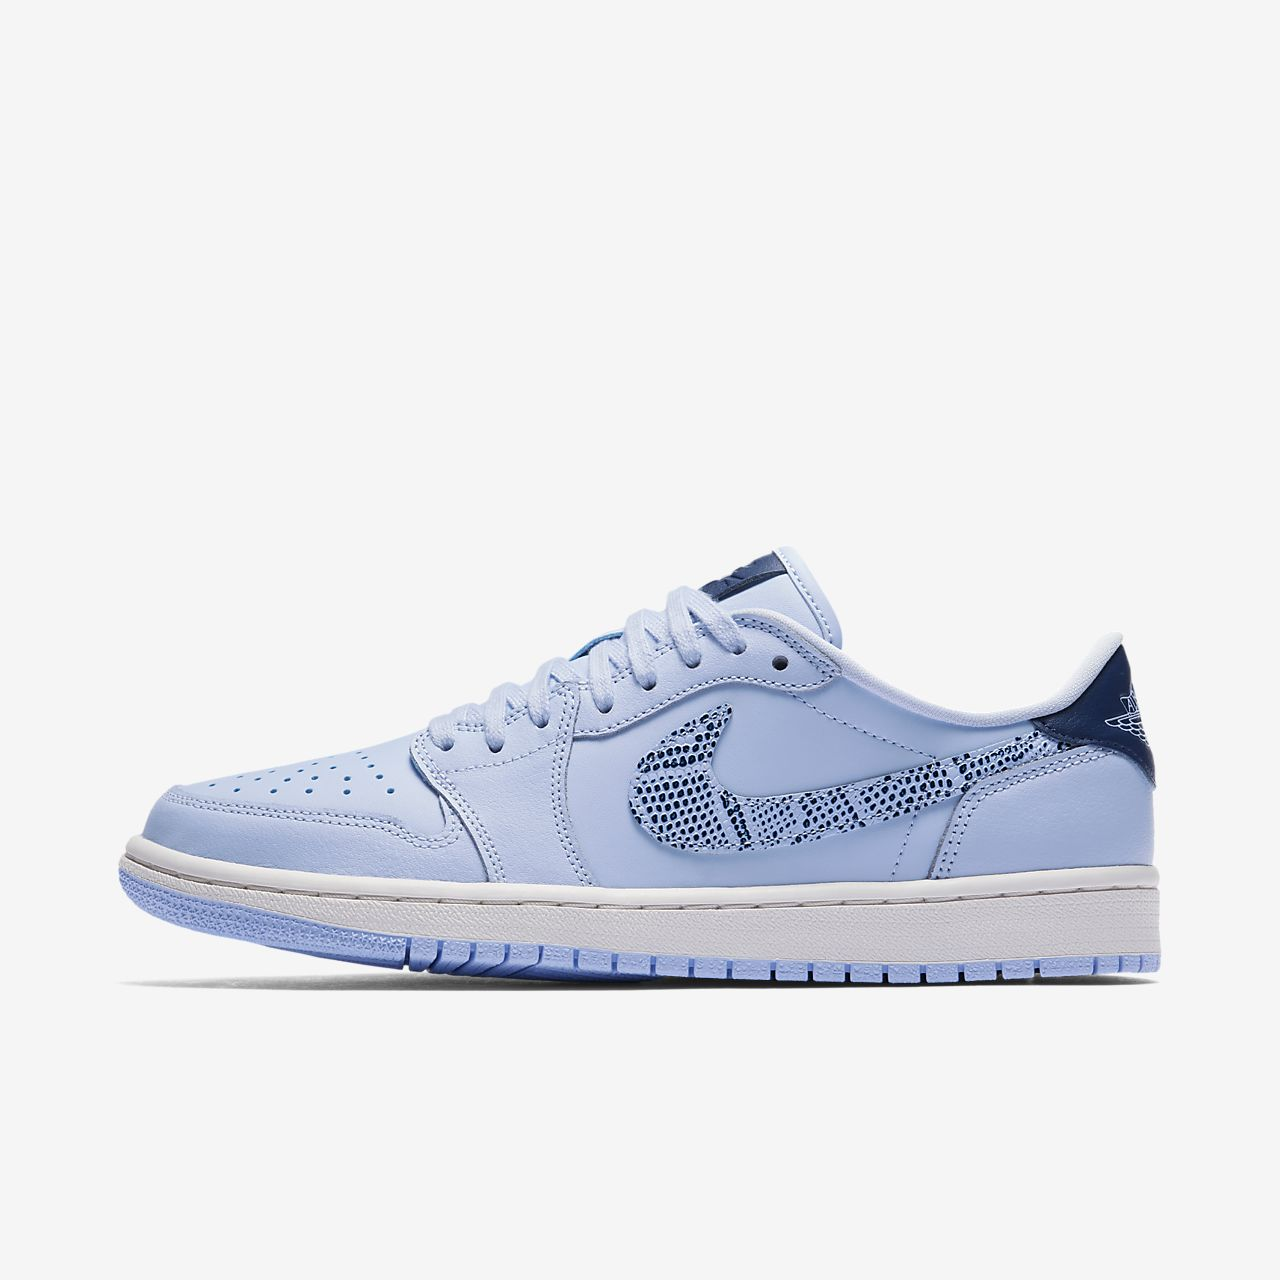 bc62bdde012 Air Jordan 1 Retro Low OG Damesschoen. Nike.com BE